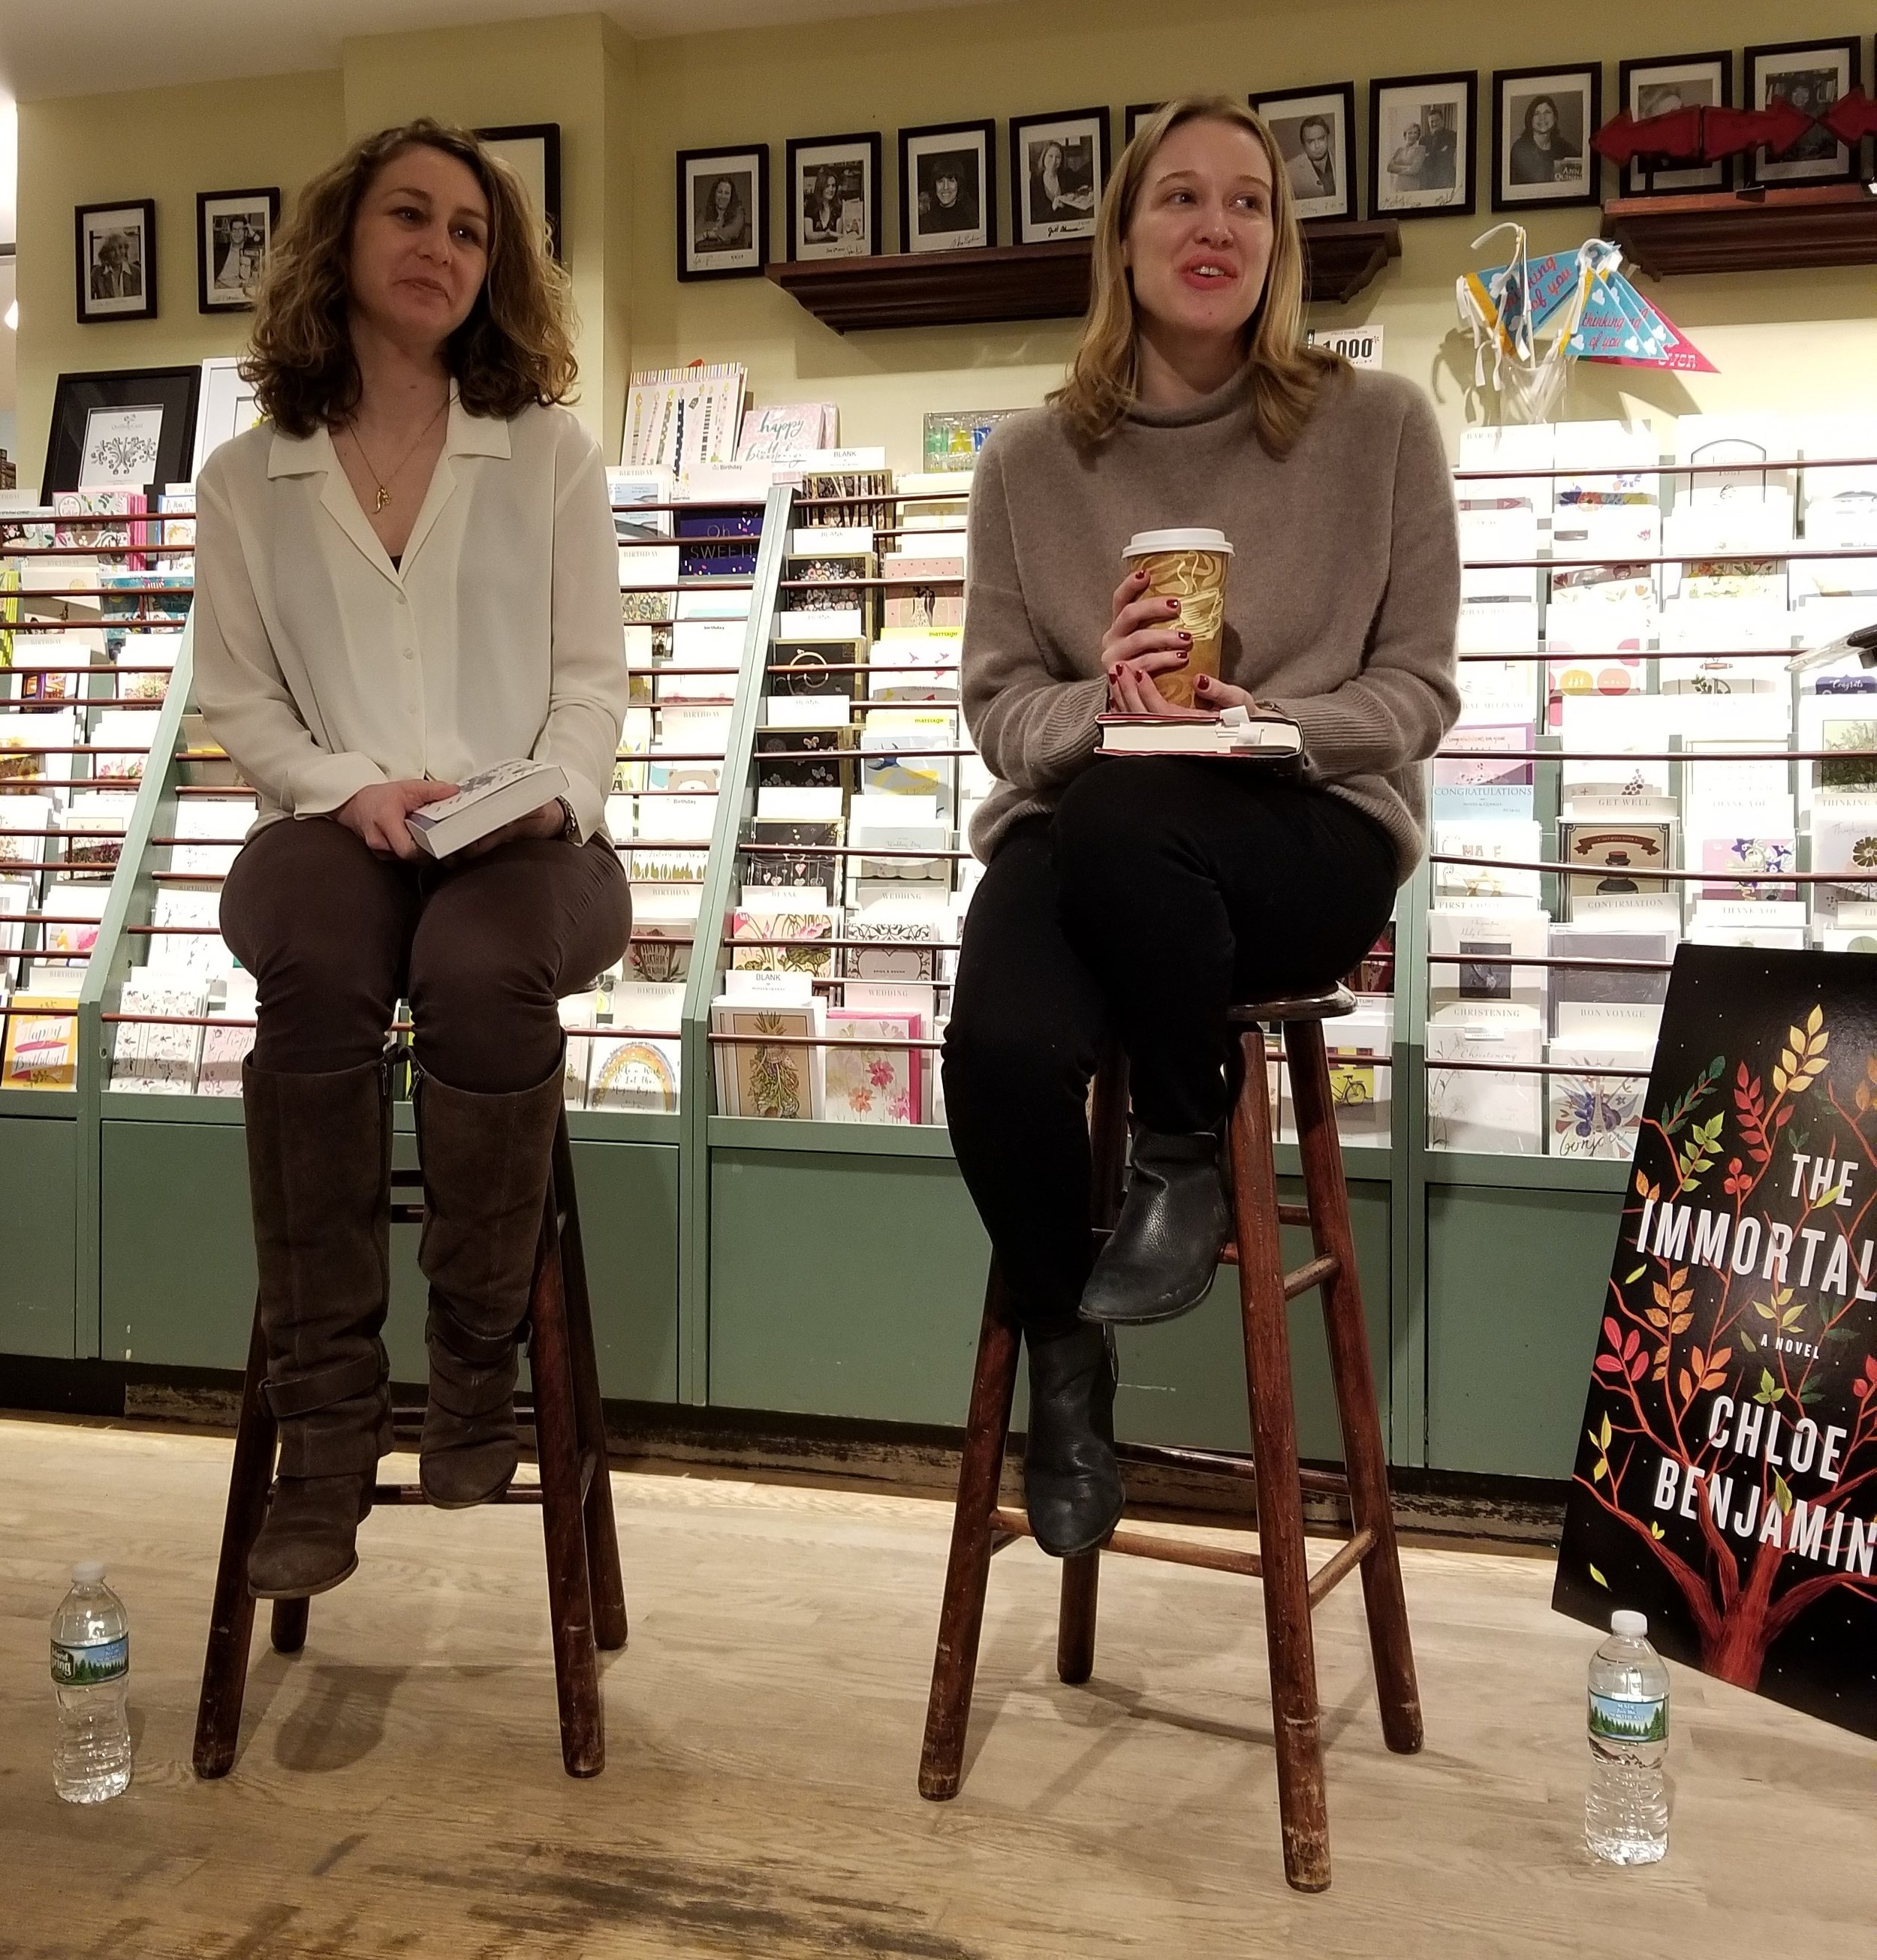 Chloe Benjamin author of  The Immortalists  and Jill Santopolo author of  The Light We Lost   in conversation at  RJ Julia Booksellers  in Madison, CT.